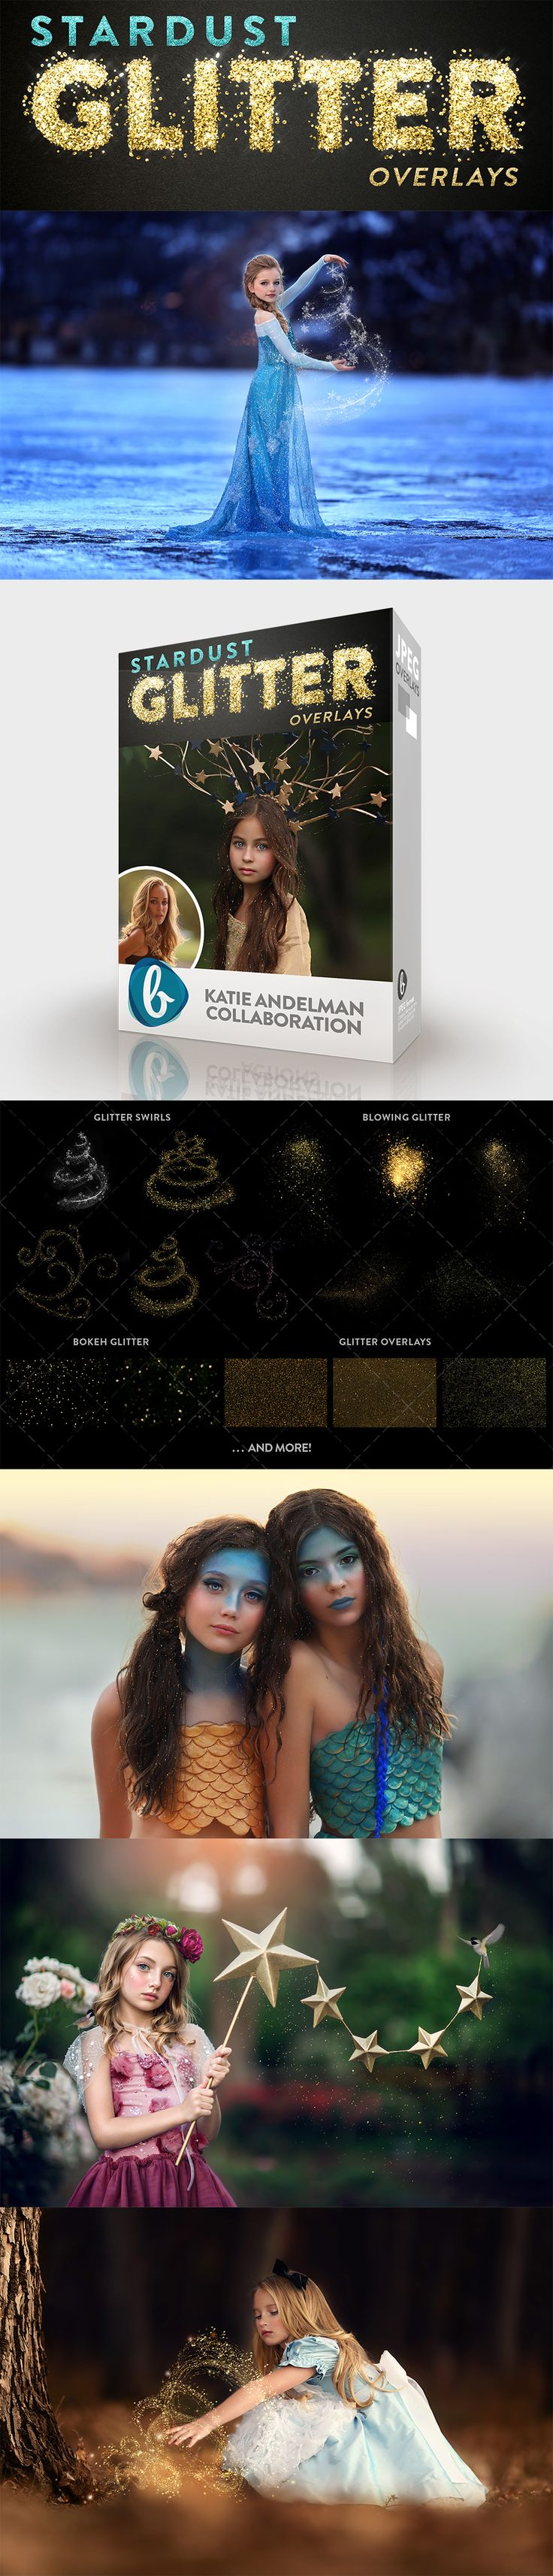 Bellevue Avenue   Stardust Glitter Overlays. 1 Glitter Applicator Action + 16 Gold & Silver Glitter +   20 Colorful Glitter + 14 Bokeh Glitter + 5 Swirling Glitter + 7 Blowing Glitter that will help you create a starry glitter effect in your images. Quick and easy to apply in Photoshop, Creative Cloud and Lightroom (with OnOne's Perfect Layer Plugin) https://bellevue-avenue.com/collections/textures-and-overlays/products/stardust-glitter-overlays